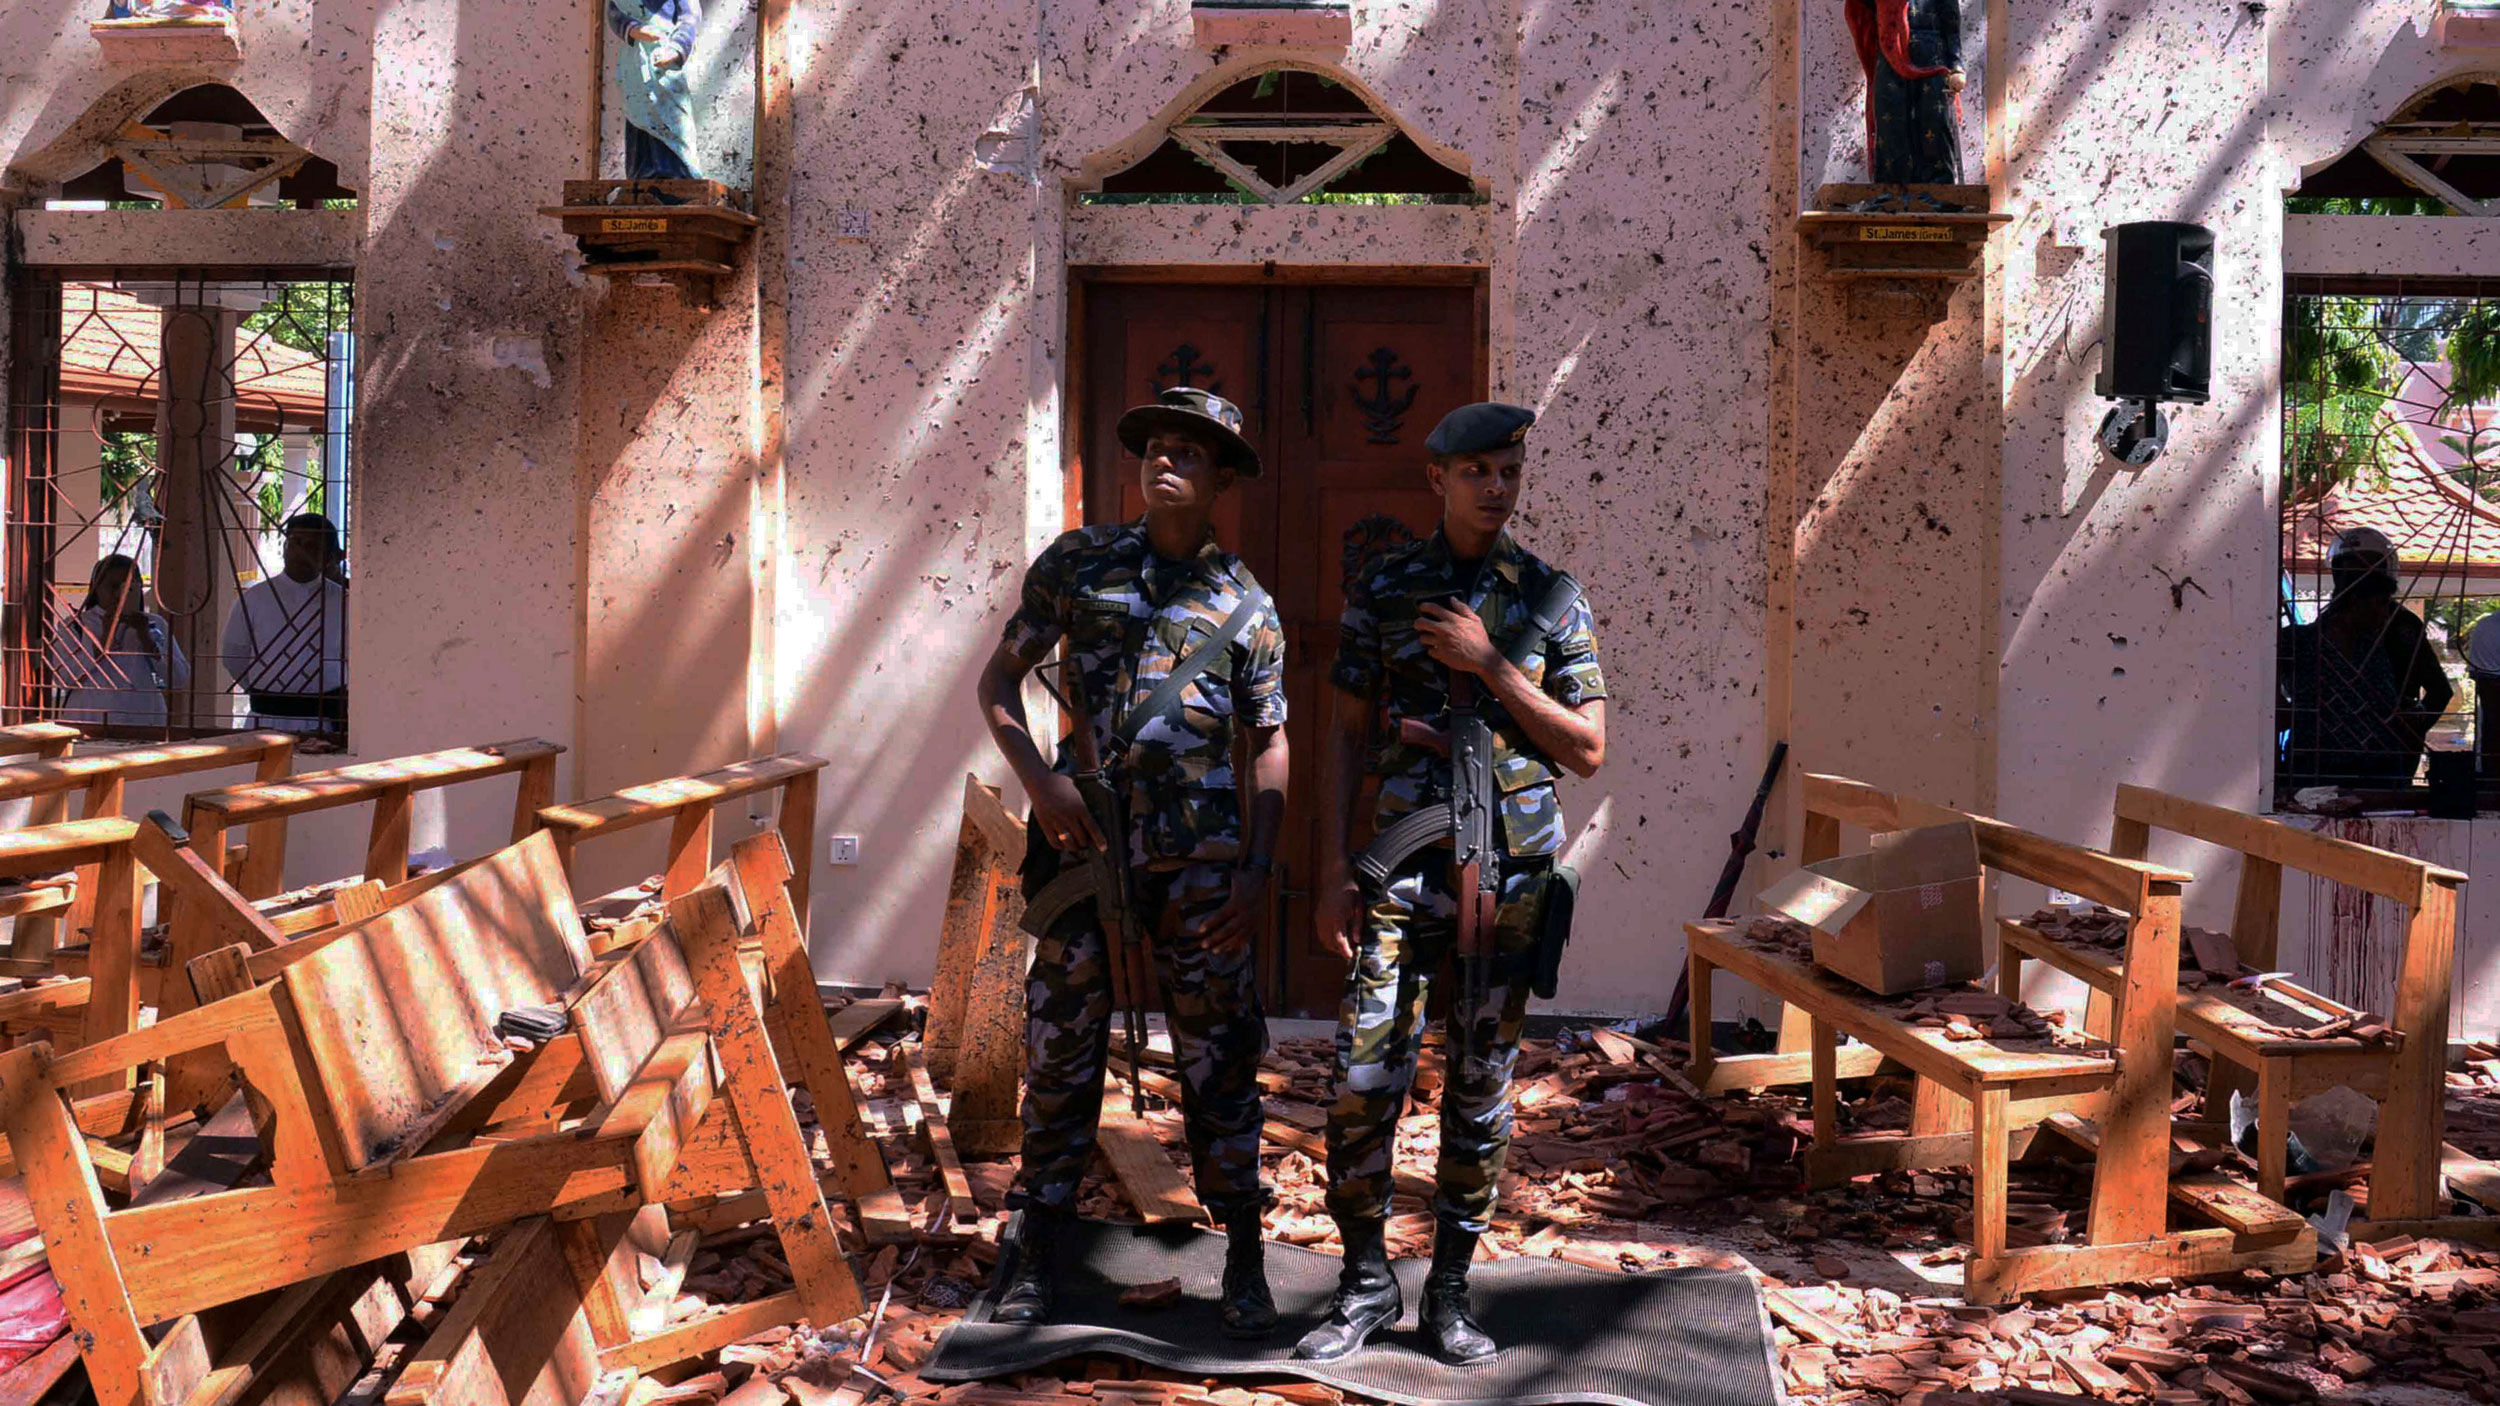 Two Sri Lankan military are shown standing with weapons over their shoulders in front of a church after an explosion.